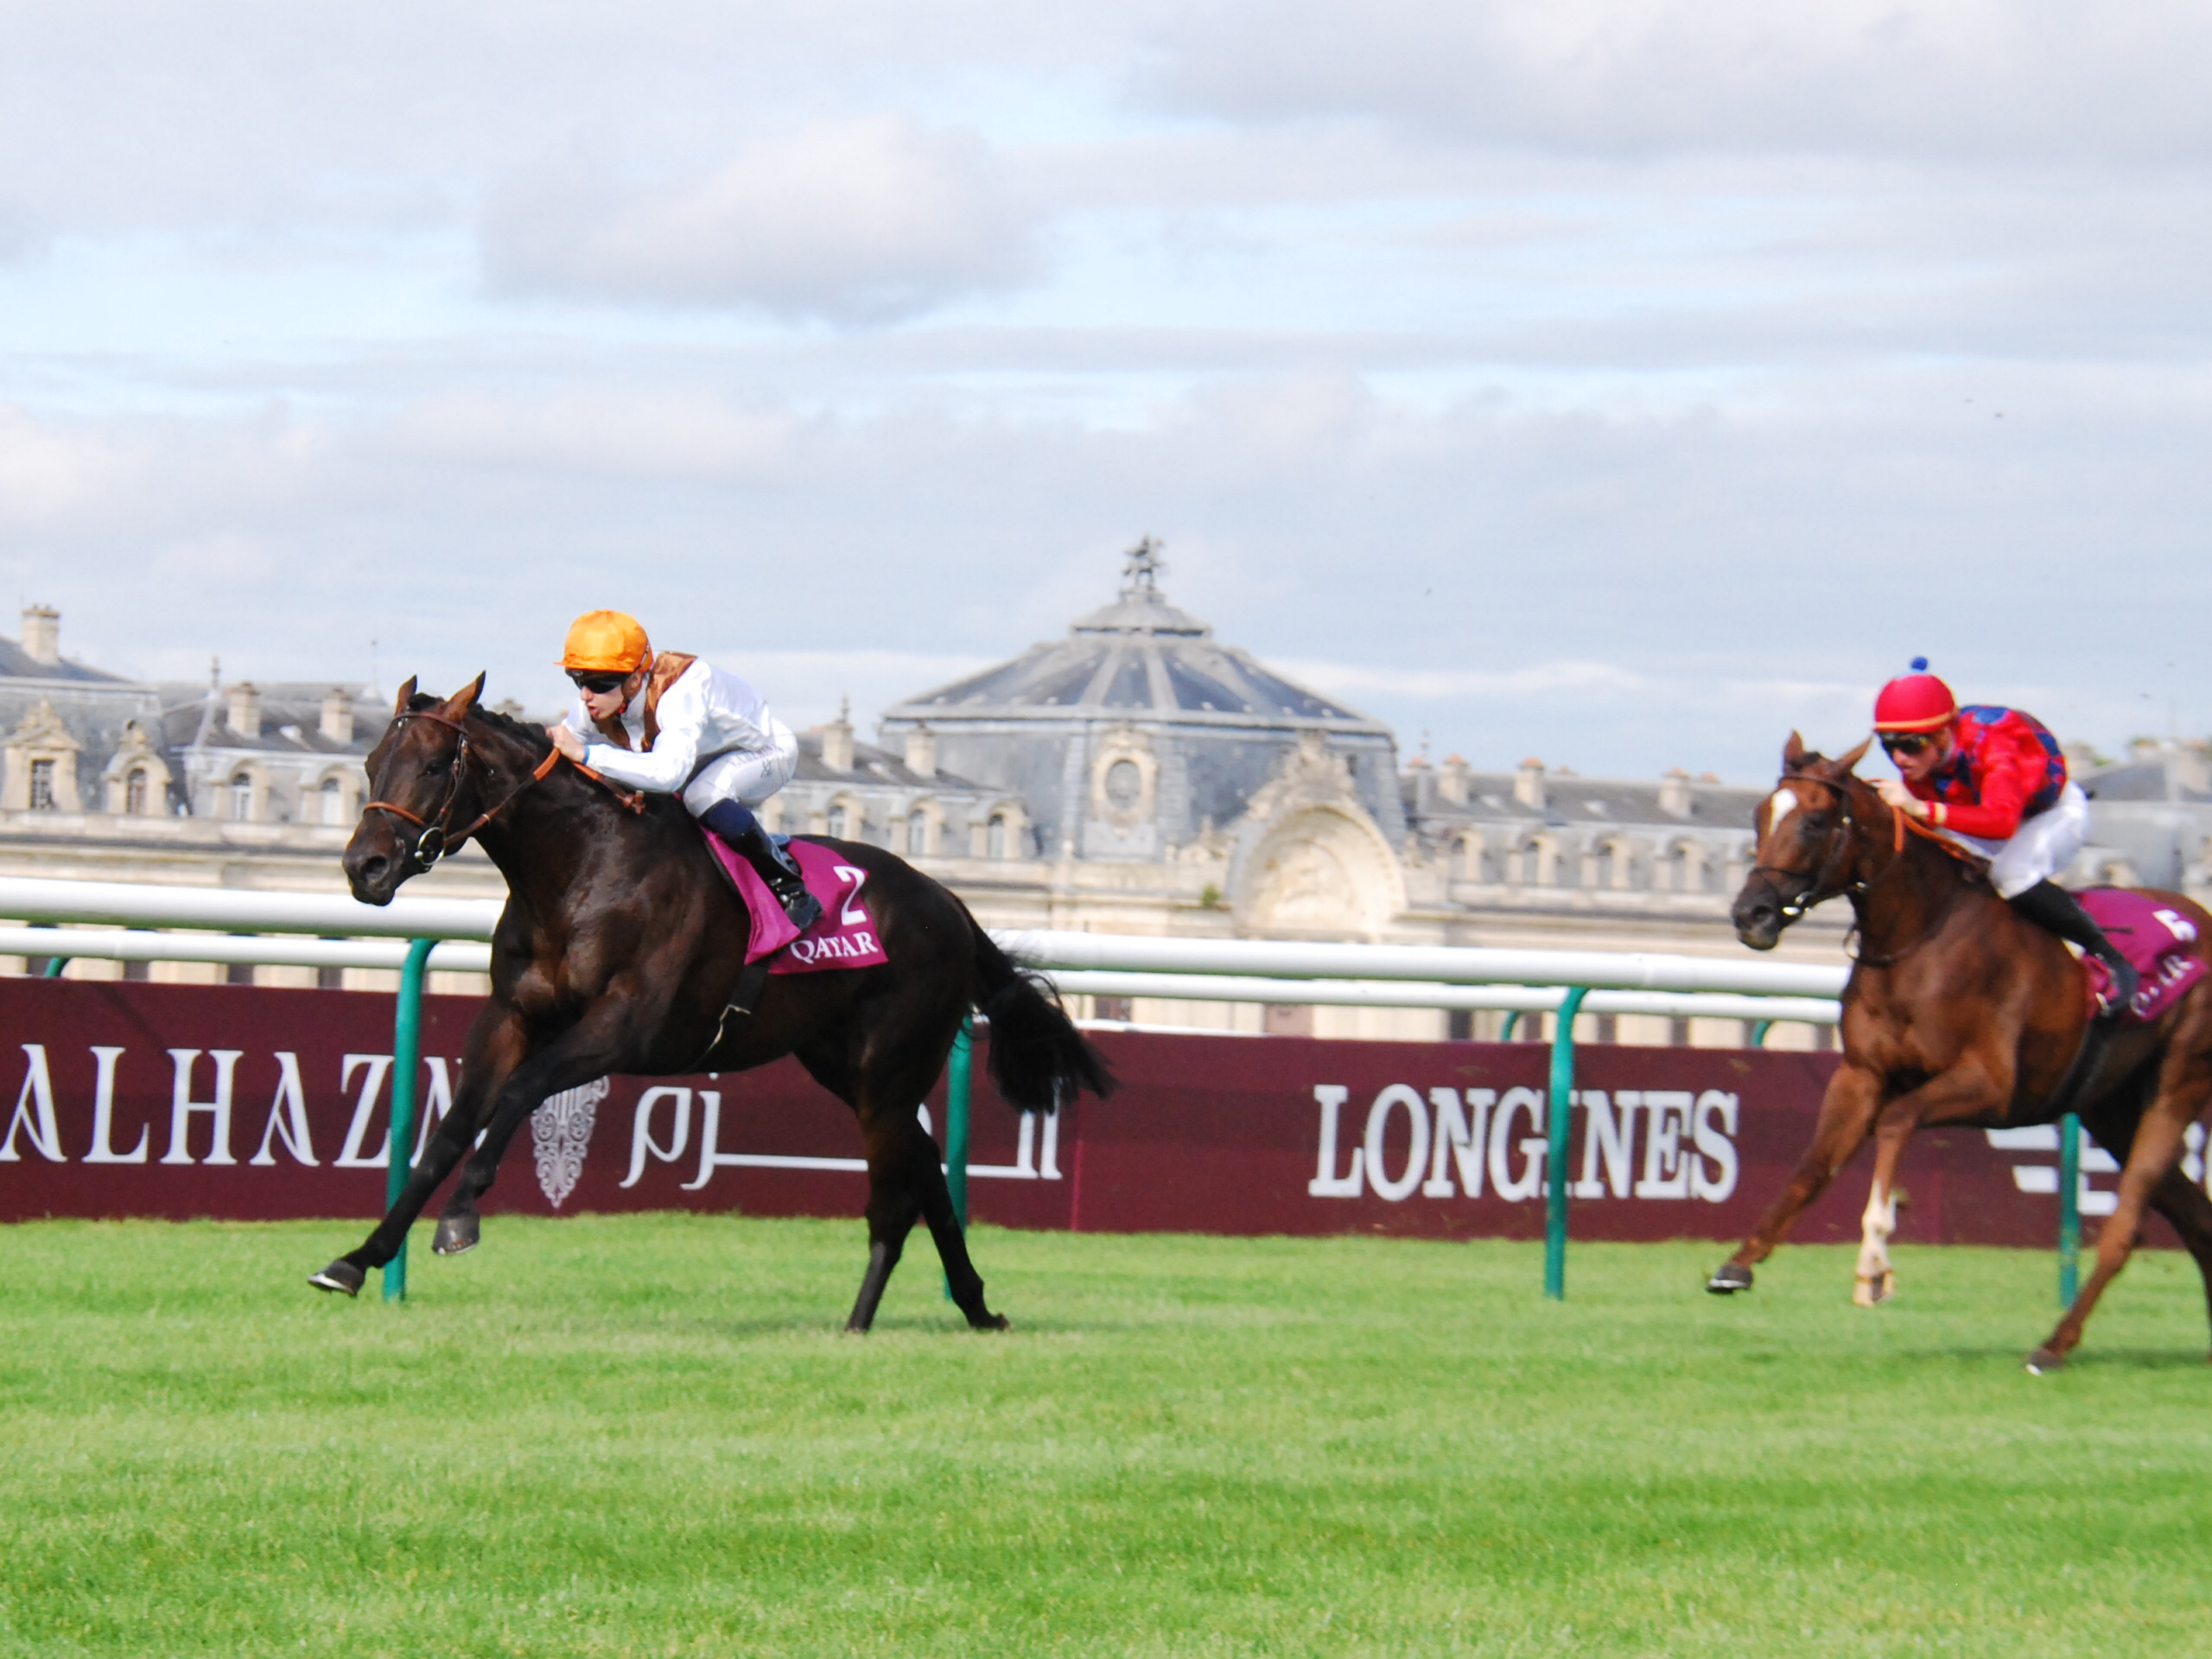 That crucial Group 1 victory: Vadamos (Vincent Cheminaud) winning the Prix du Moulin at Chantilly. Photo: John Gilmore